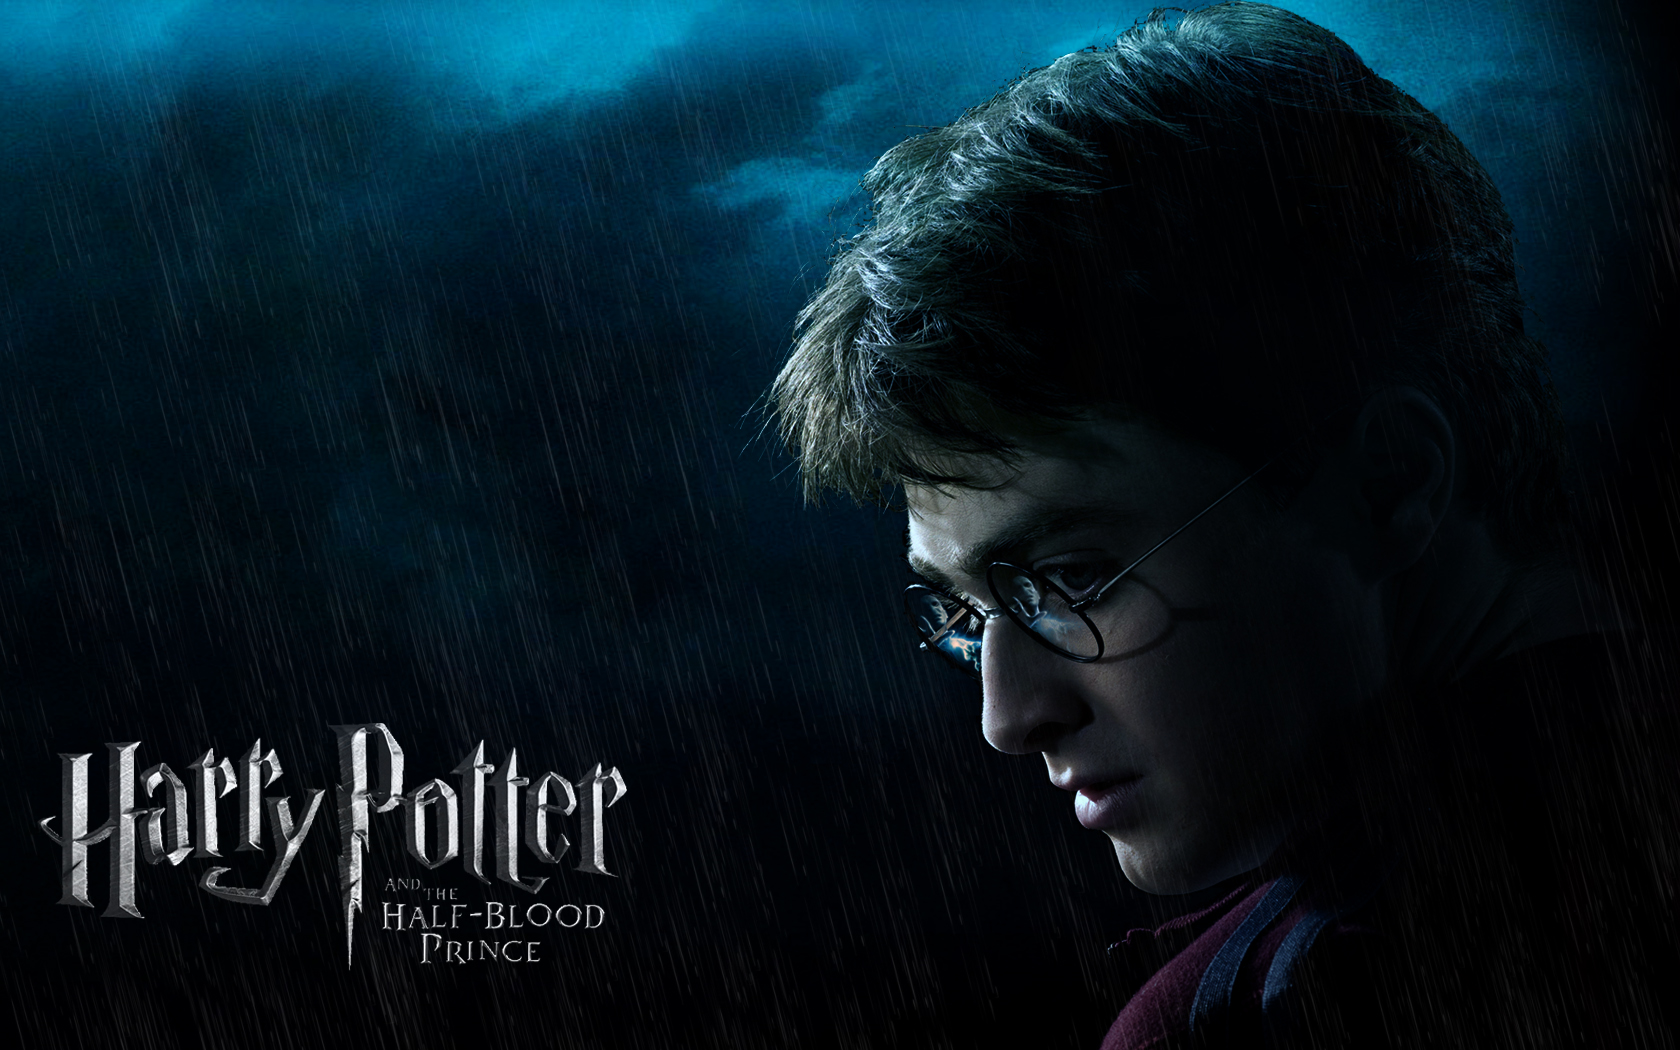 harry potter images harry potter hd wallpaper and background photos